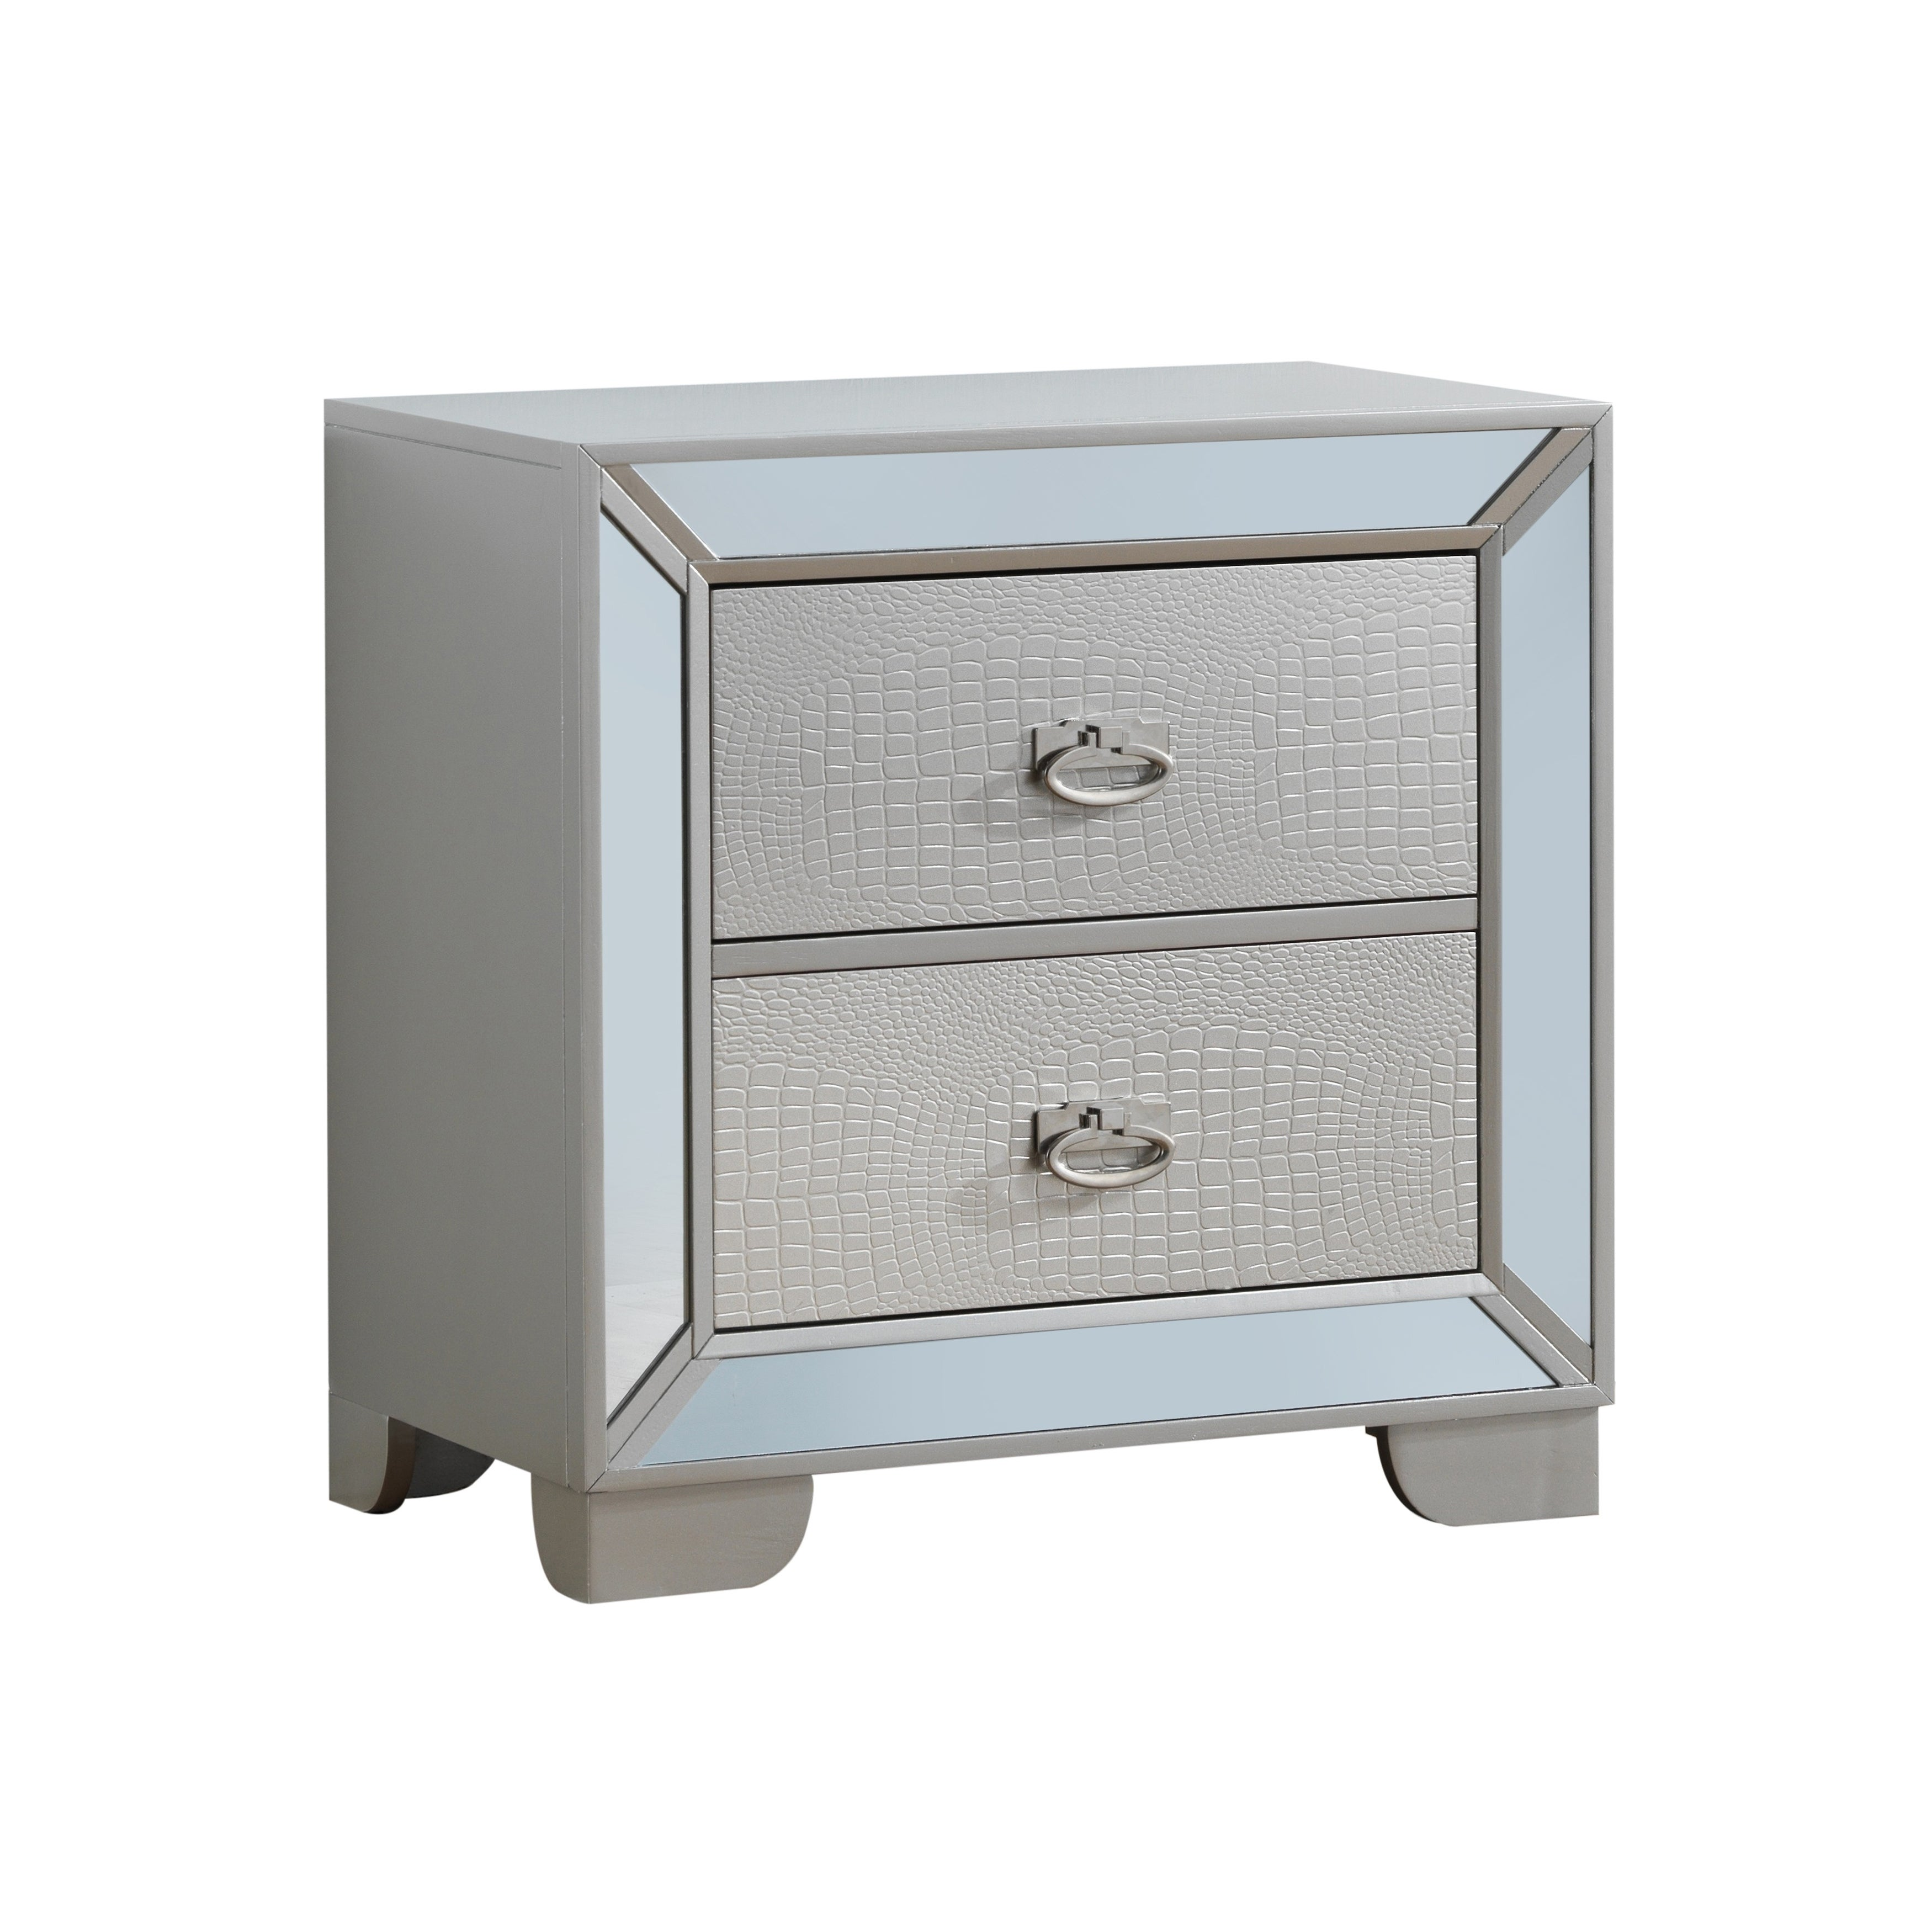 Glory Furniture Hollywood Hills 2 Drawer Wood Nightstand Free Shipping Today 21791938